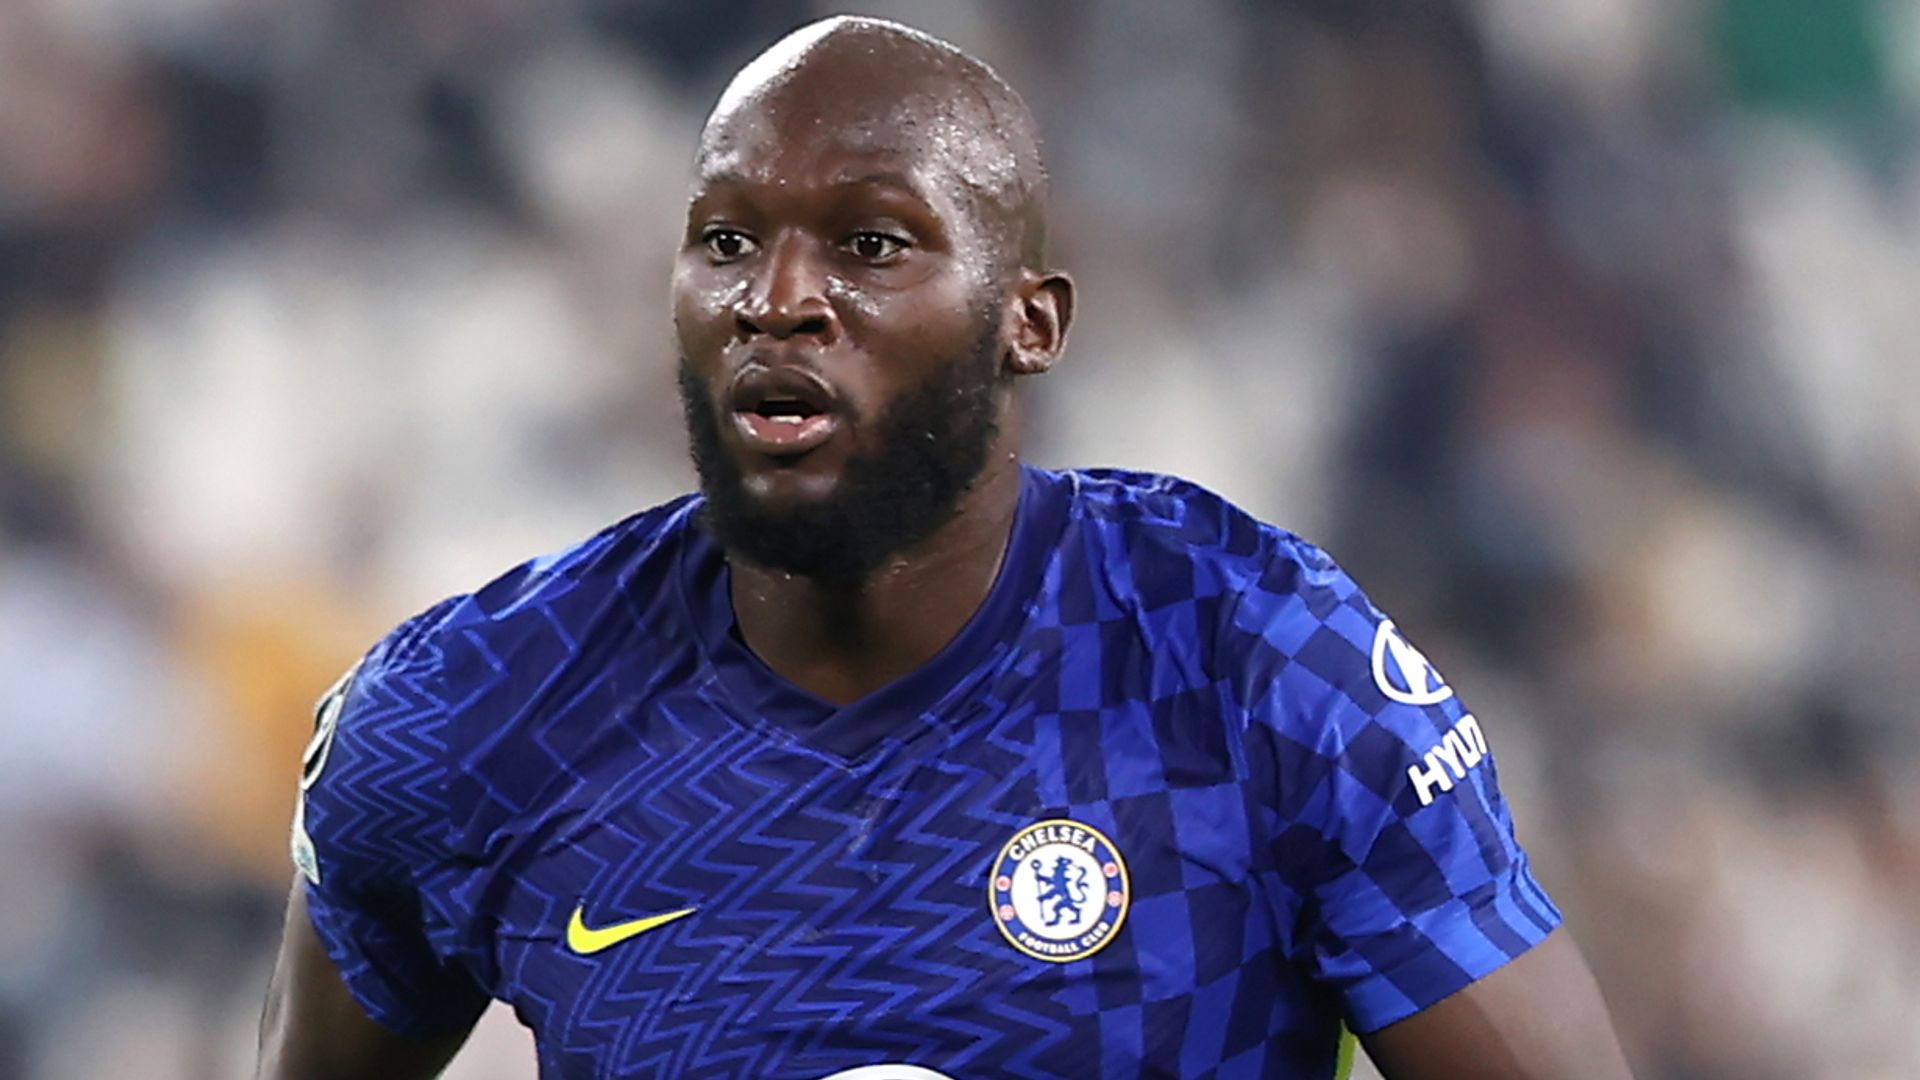 'Chelsea the love of his childhood' – why Lukaku returned